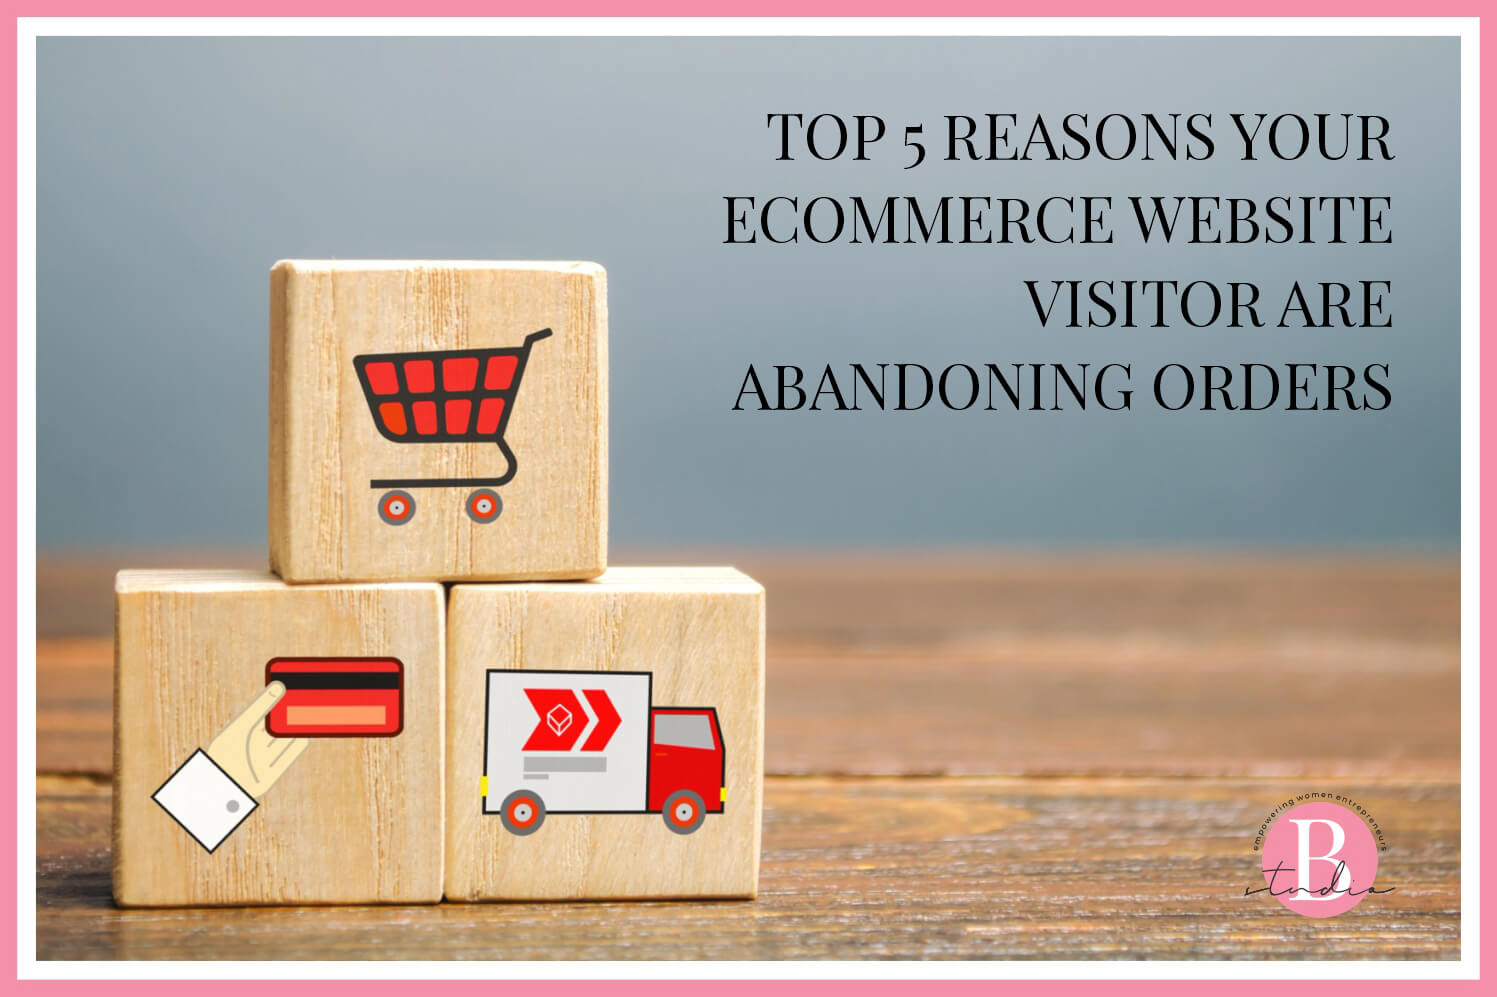 Top 5 reasons your eCommerce website visitor are abandoning orders img